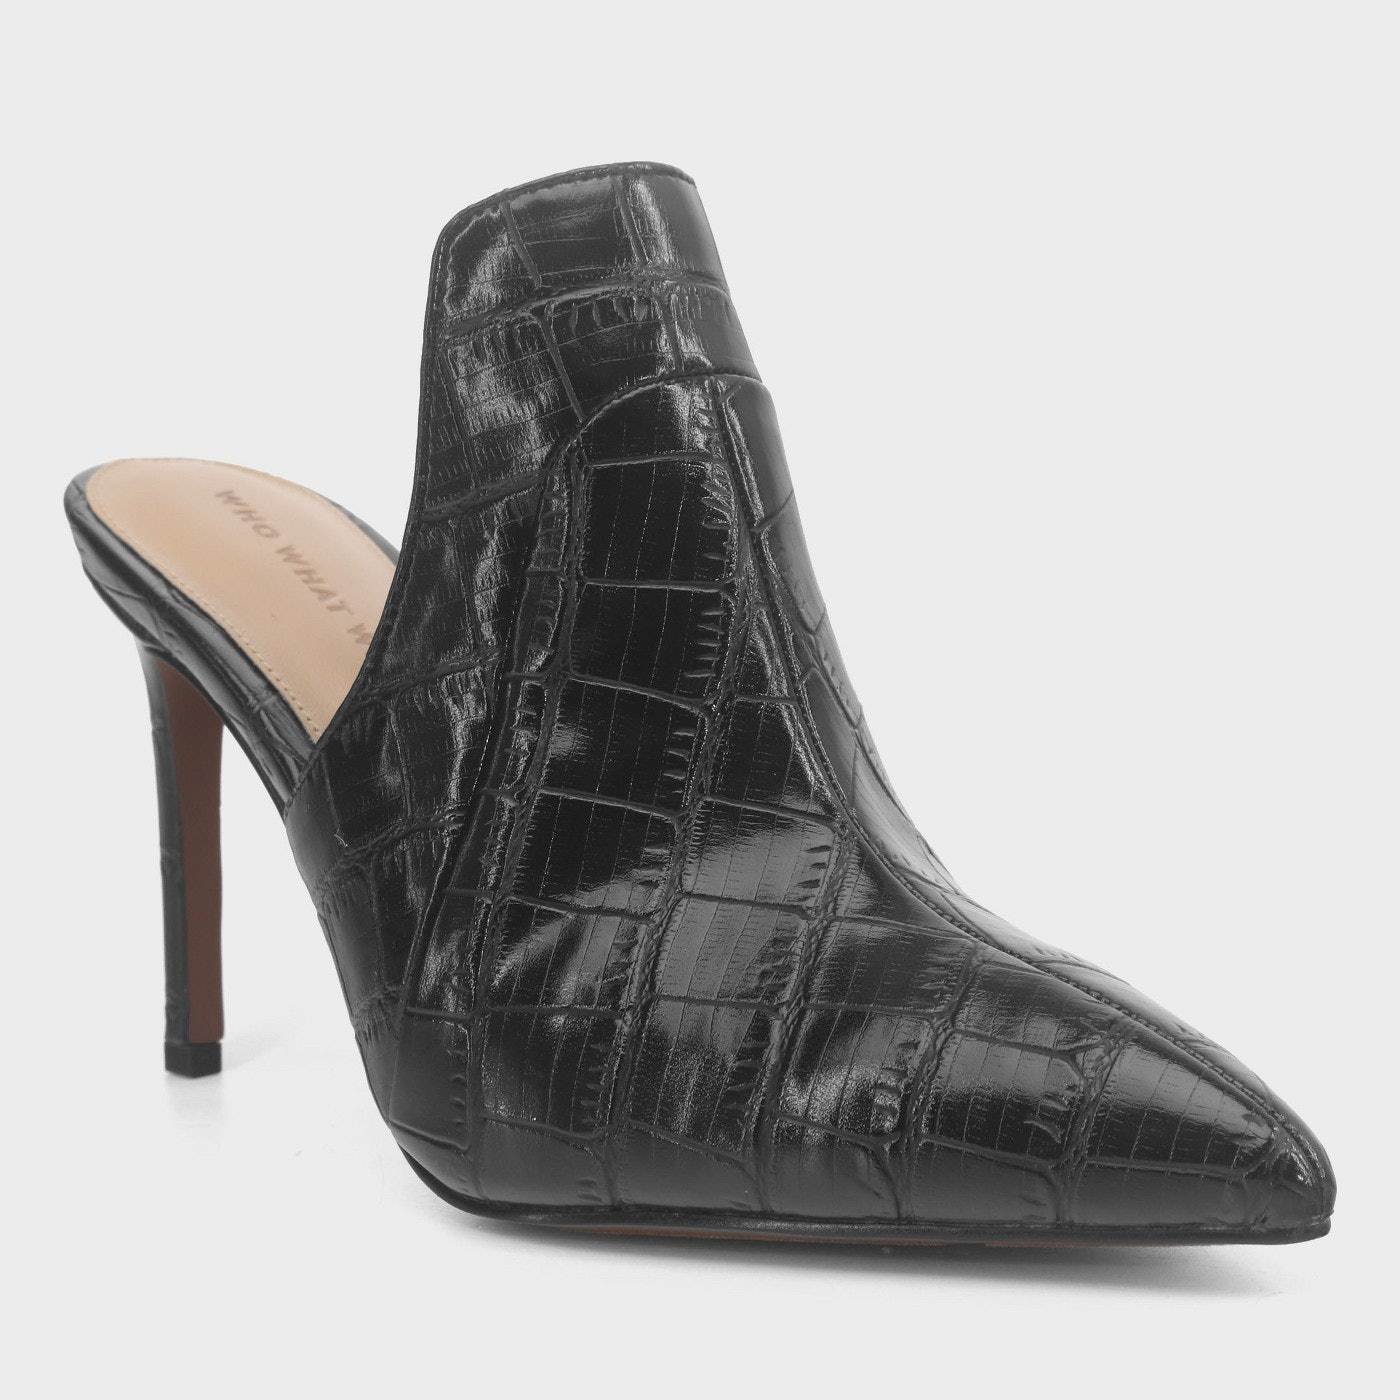 9d96546efa 14 Cheap Boots & Heels In Target's Fall Sale You Can Score For $35 Or Less